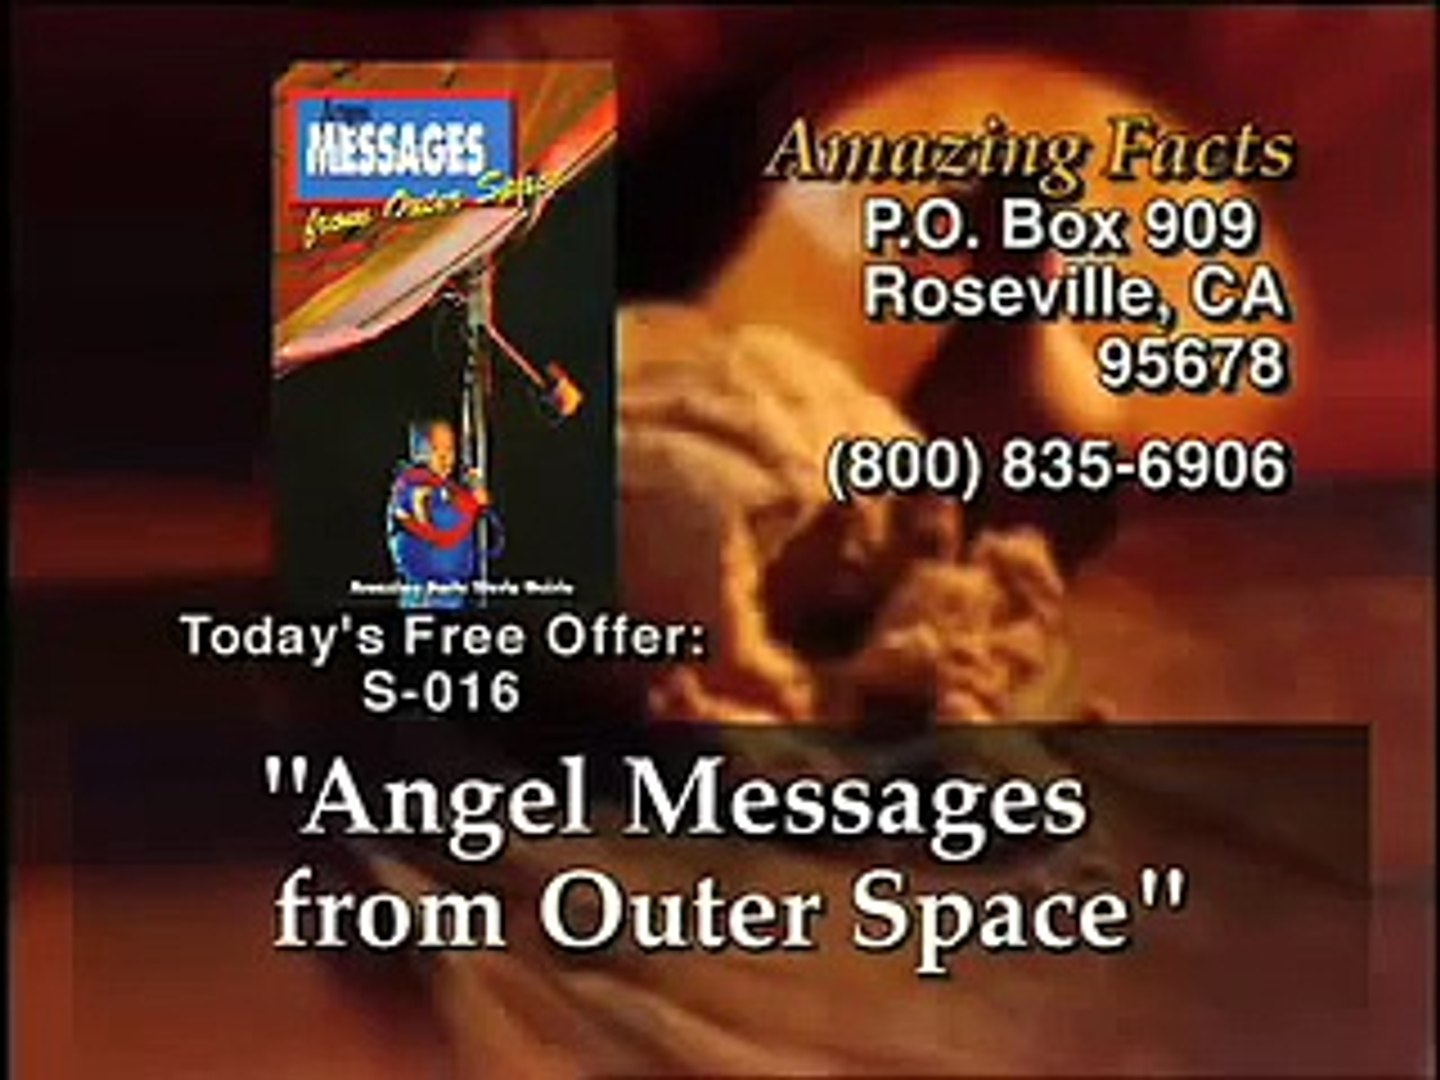 16. Angel Messages from Outer Space